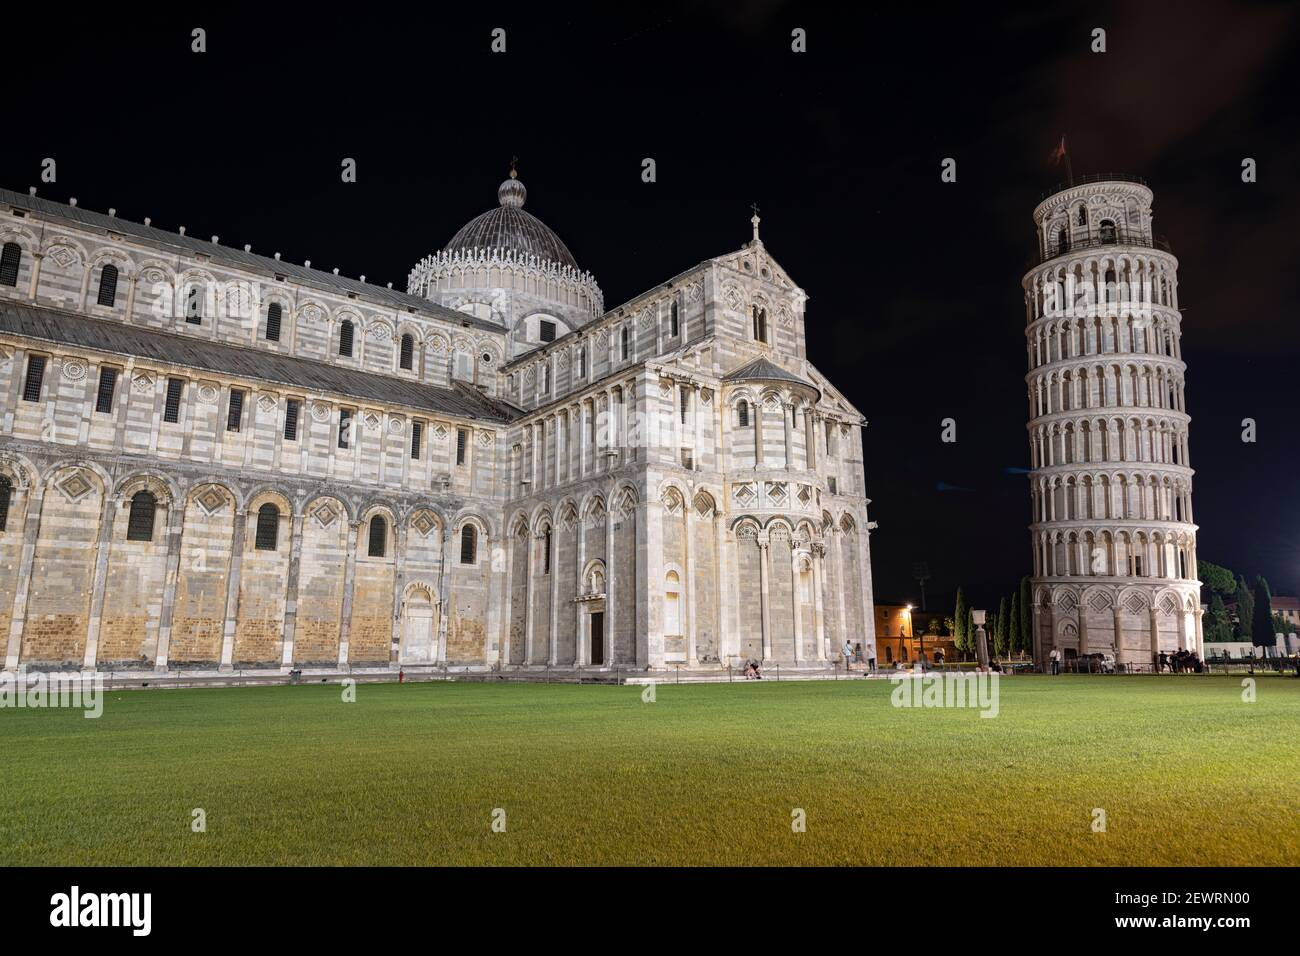 Cathedral (Duomo) and Leaning Tower at night, Piazza Dei Miracoli, UNESCO World Heritage Site, Pisa, Tuscany, Italy, Europe Stock Photo